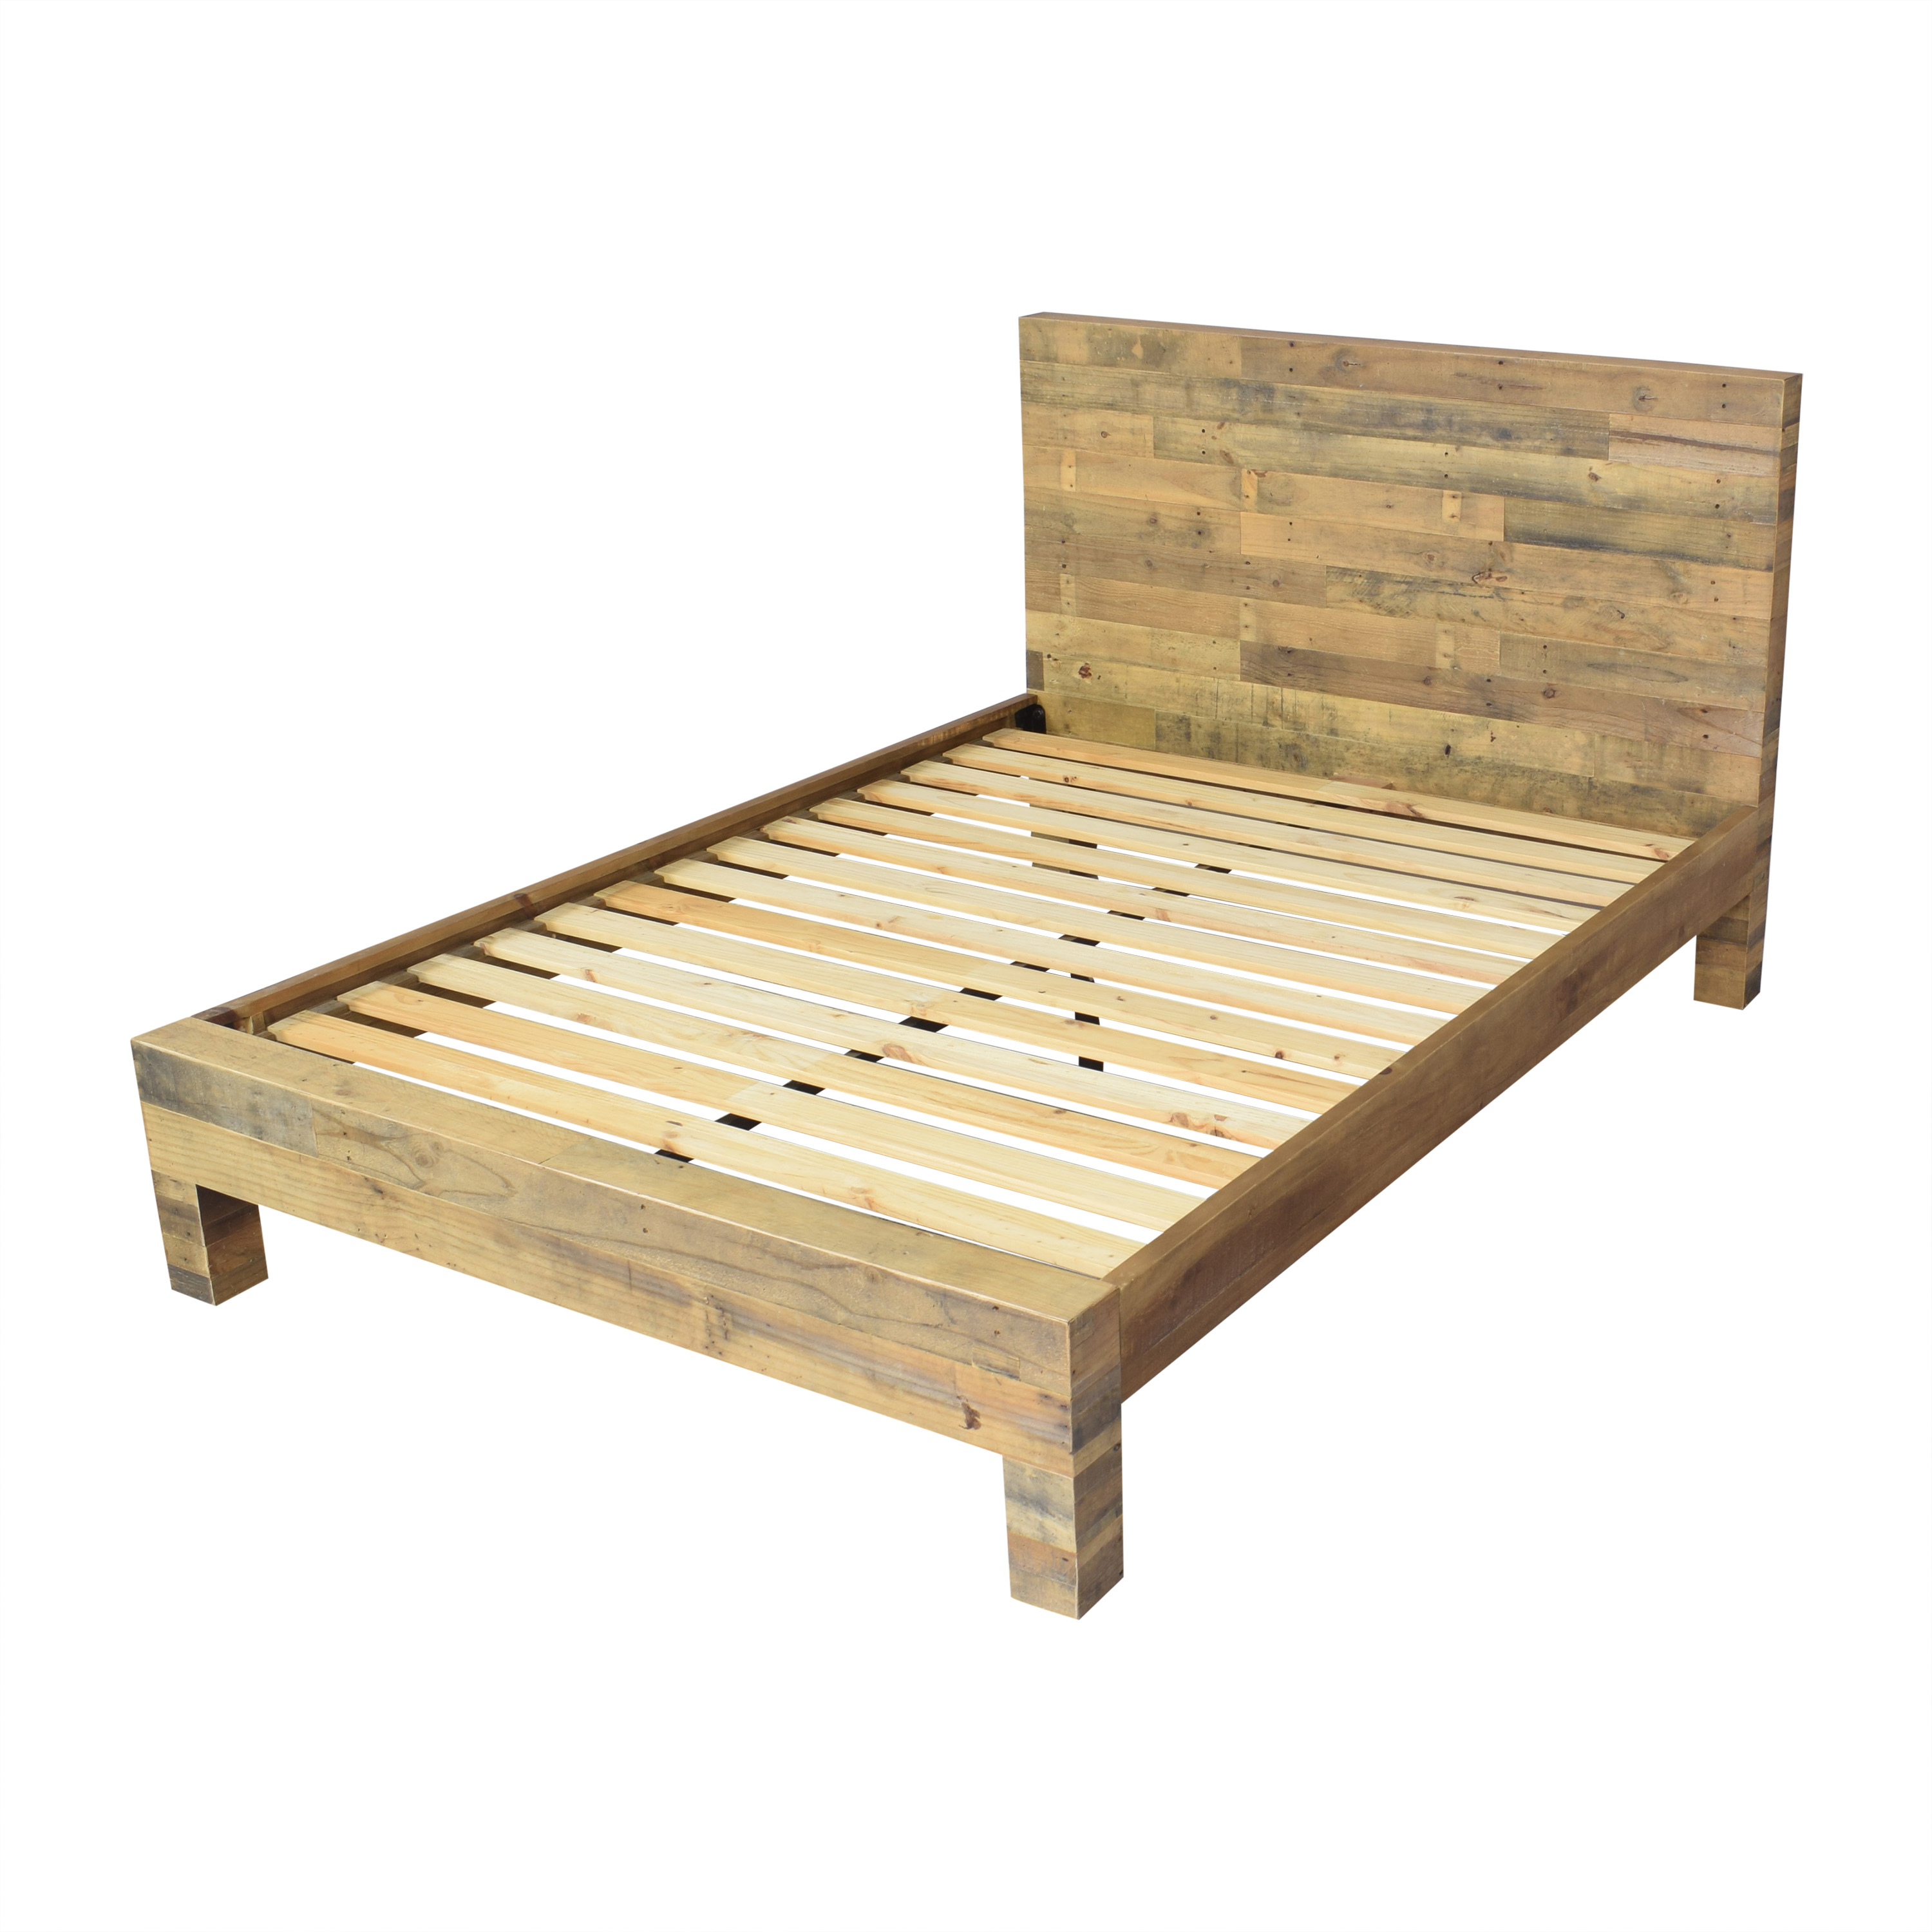 West Elm West Elm Emmerson Reclaimed Queen Bed used